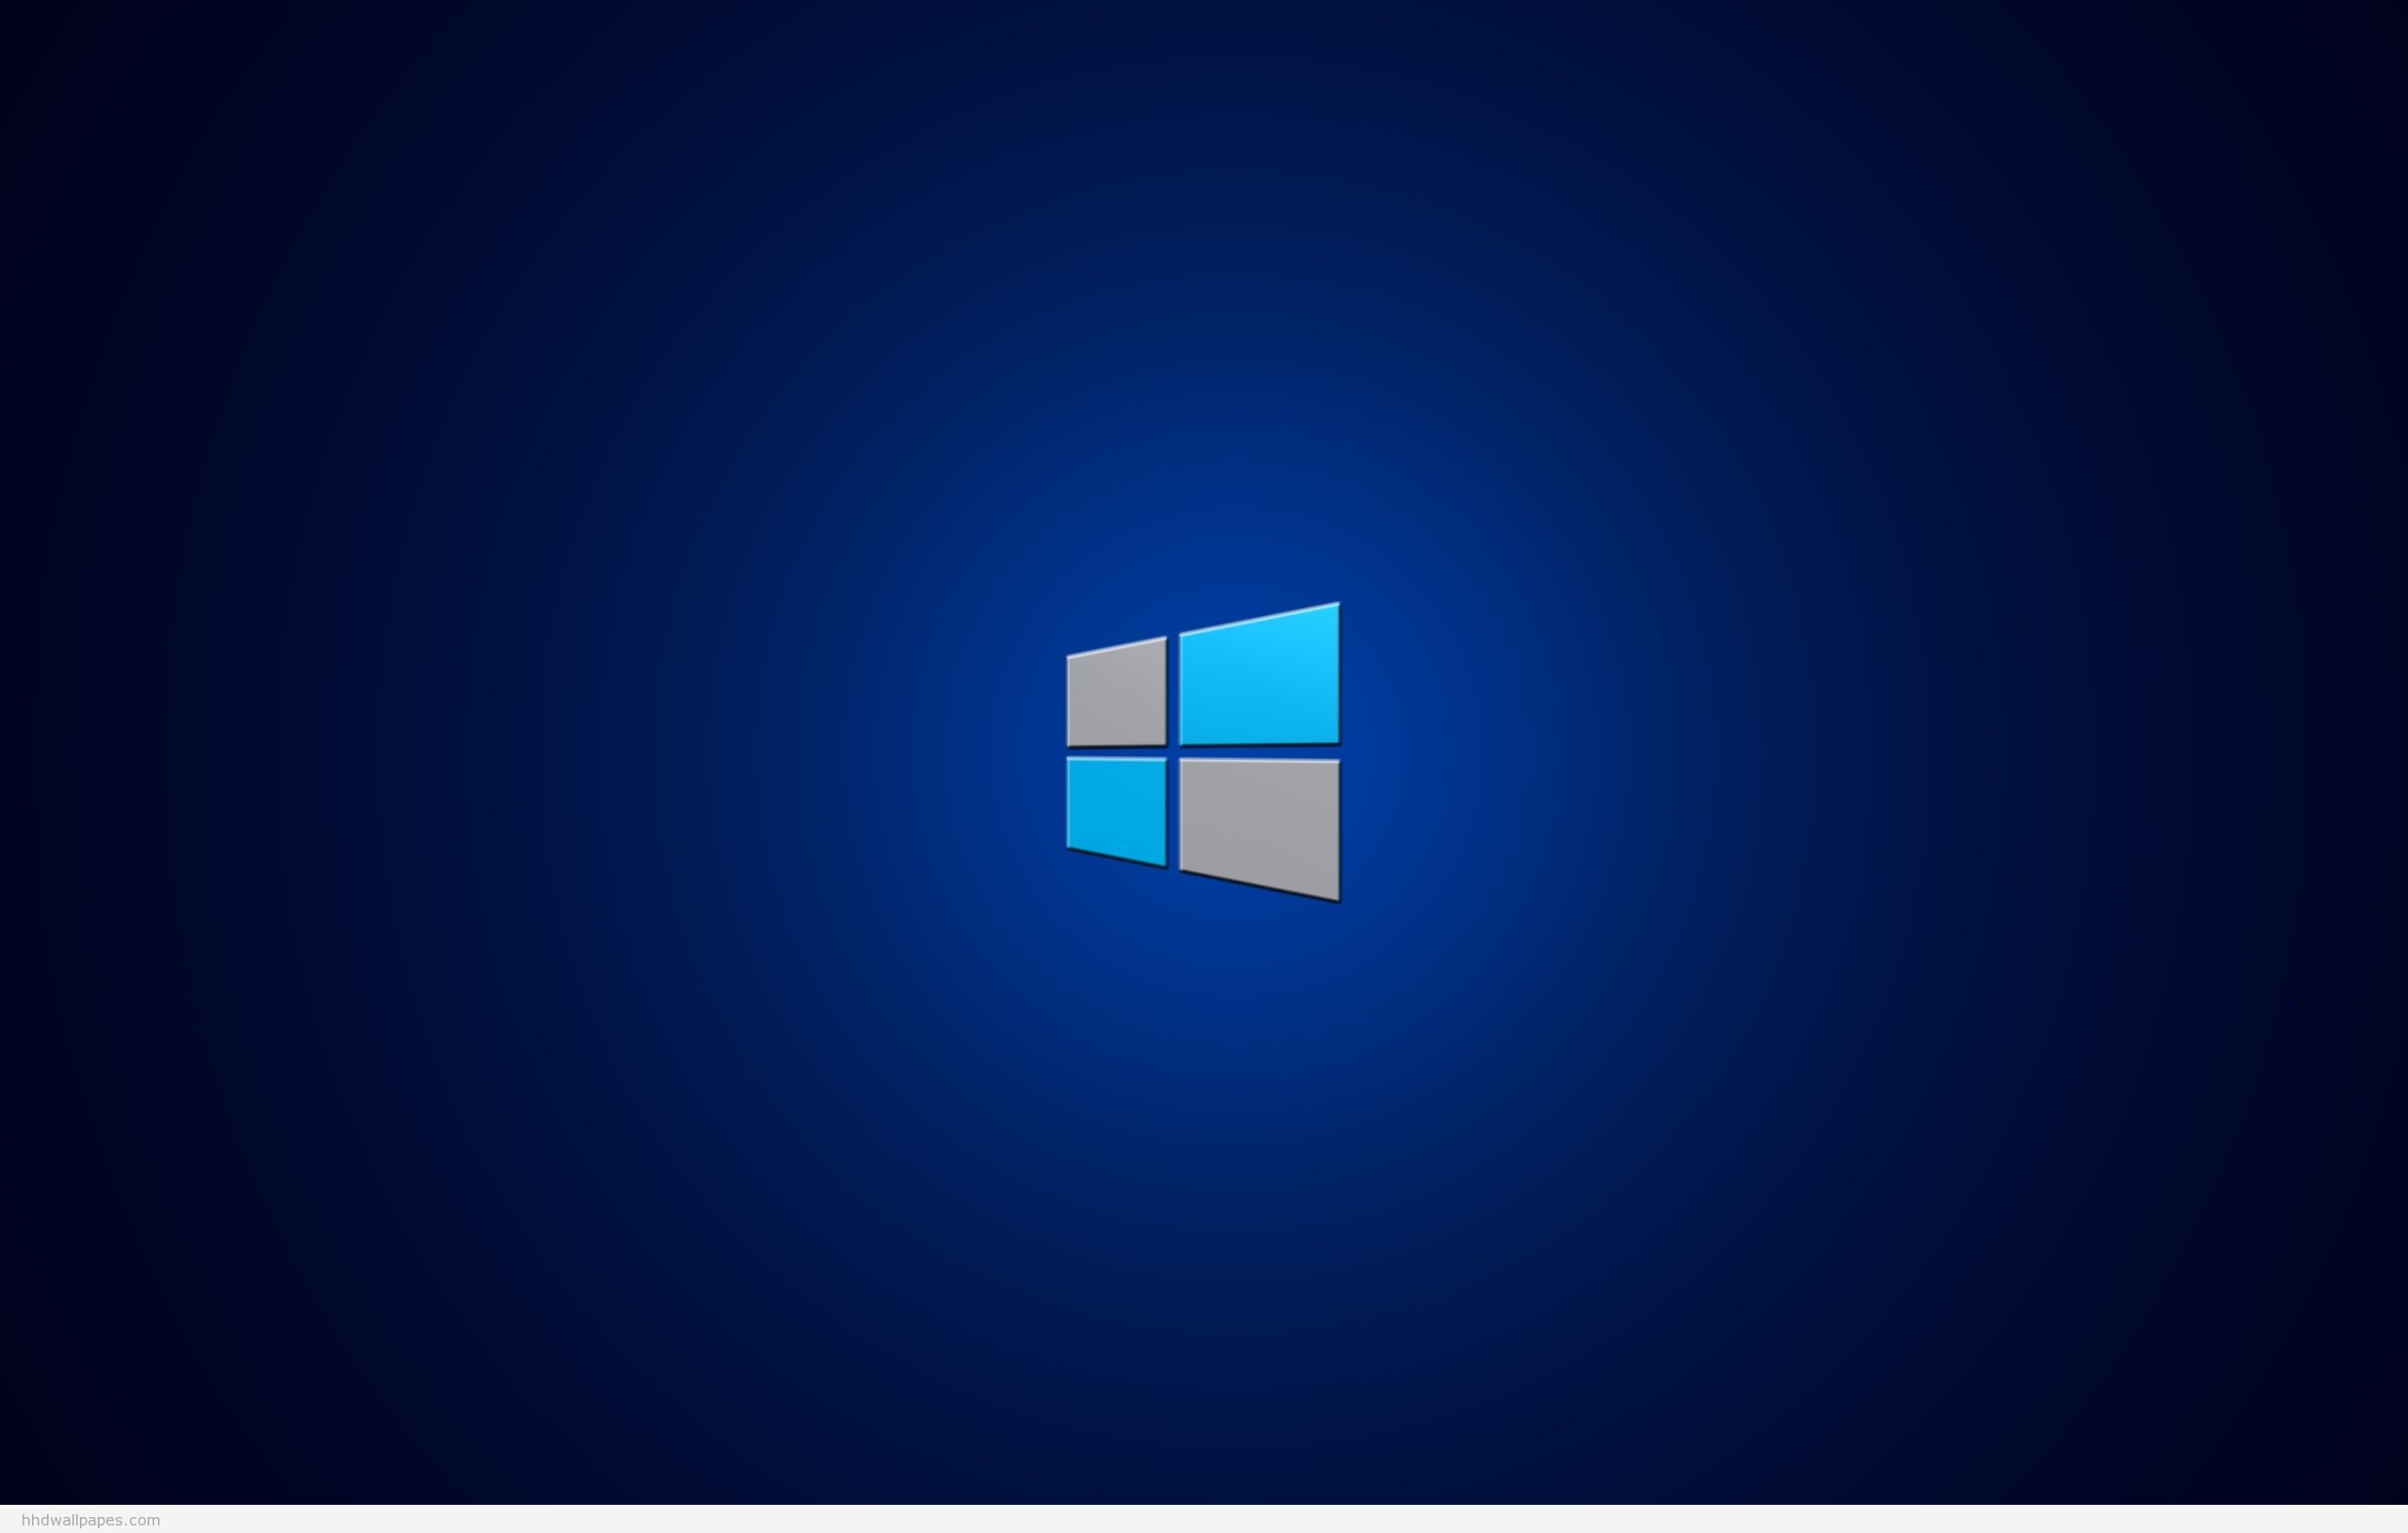 Wallpapers For High Resolution Wallpapers Windows 8 2560x1630